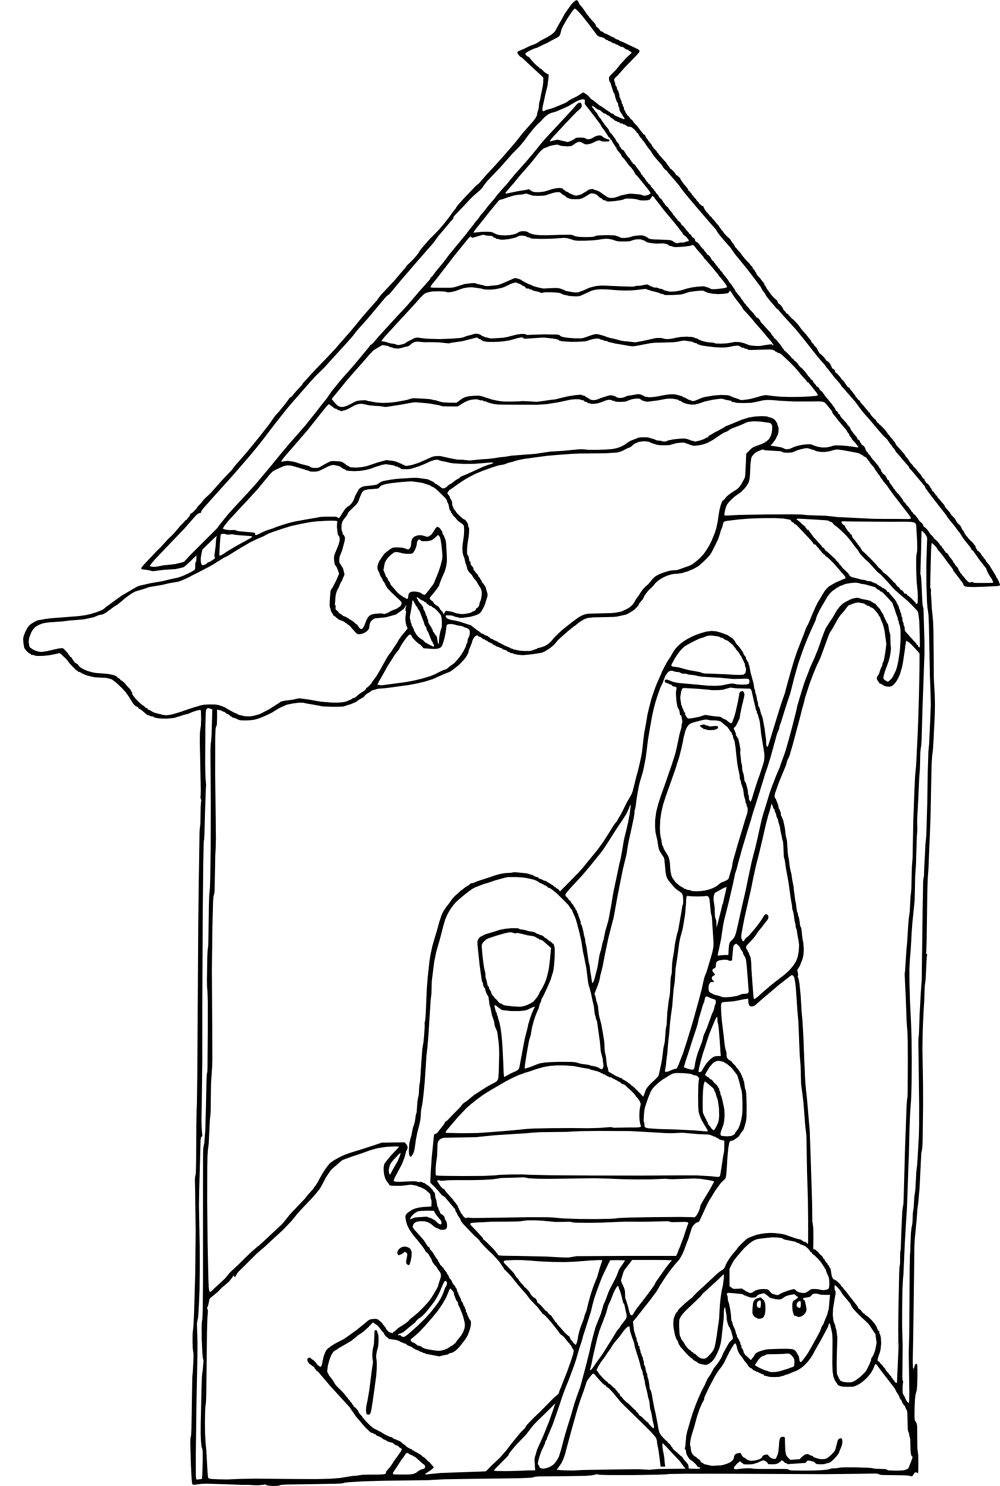 coloring pages for kids jesus slipper pink jesus christ printable coloring pages kids jesus coloring pages for